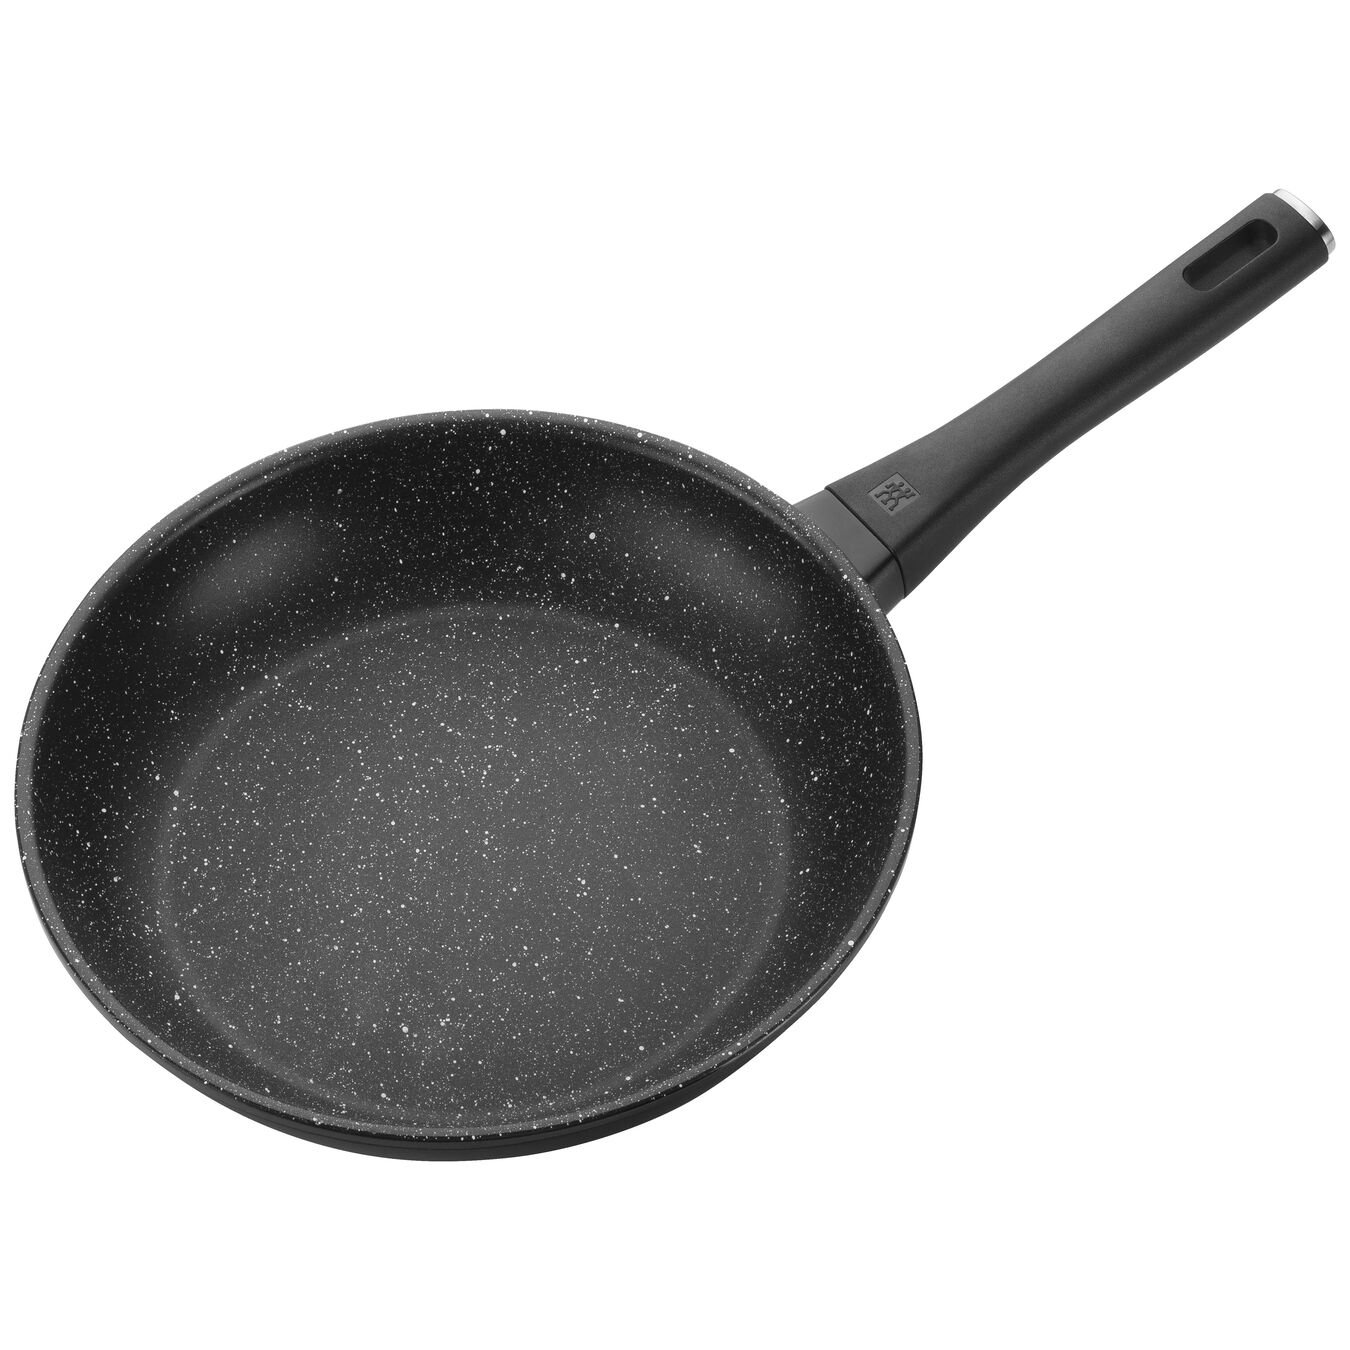 20 cm / 8 inch Aluminum Frying pan,,large 3